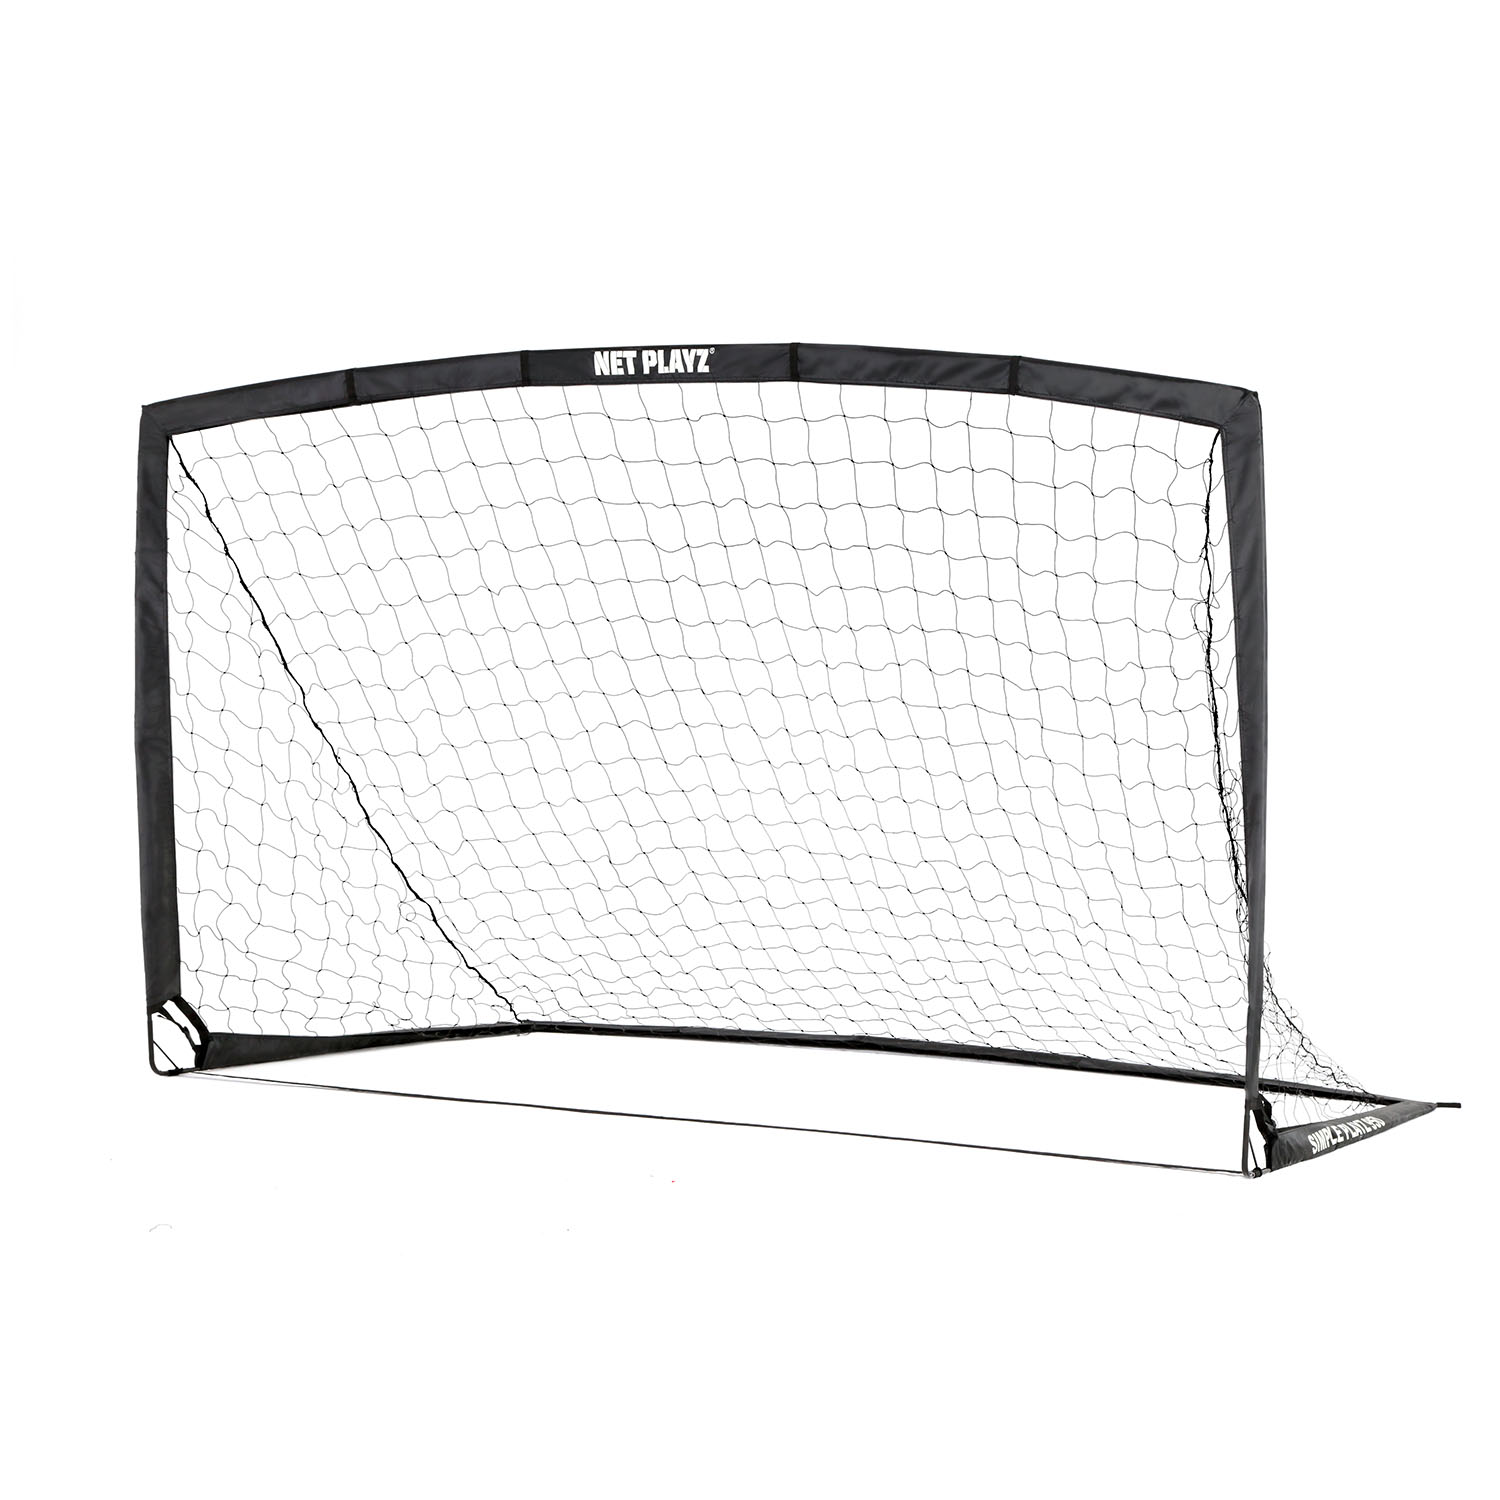 Net Playz Portable Training Soccer Goal ( Sets up in 5 minutes) - Includes Carry Bag and 4 Hooks